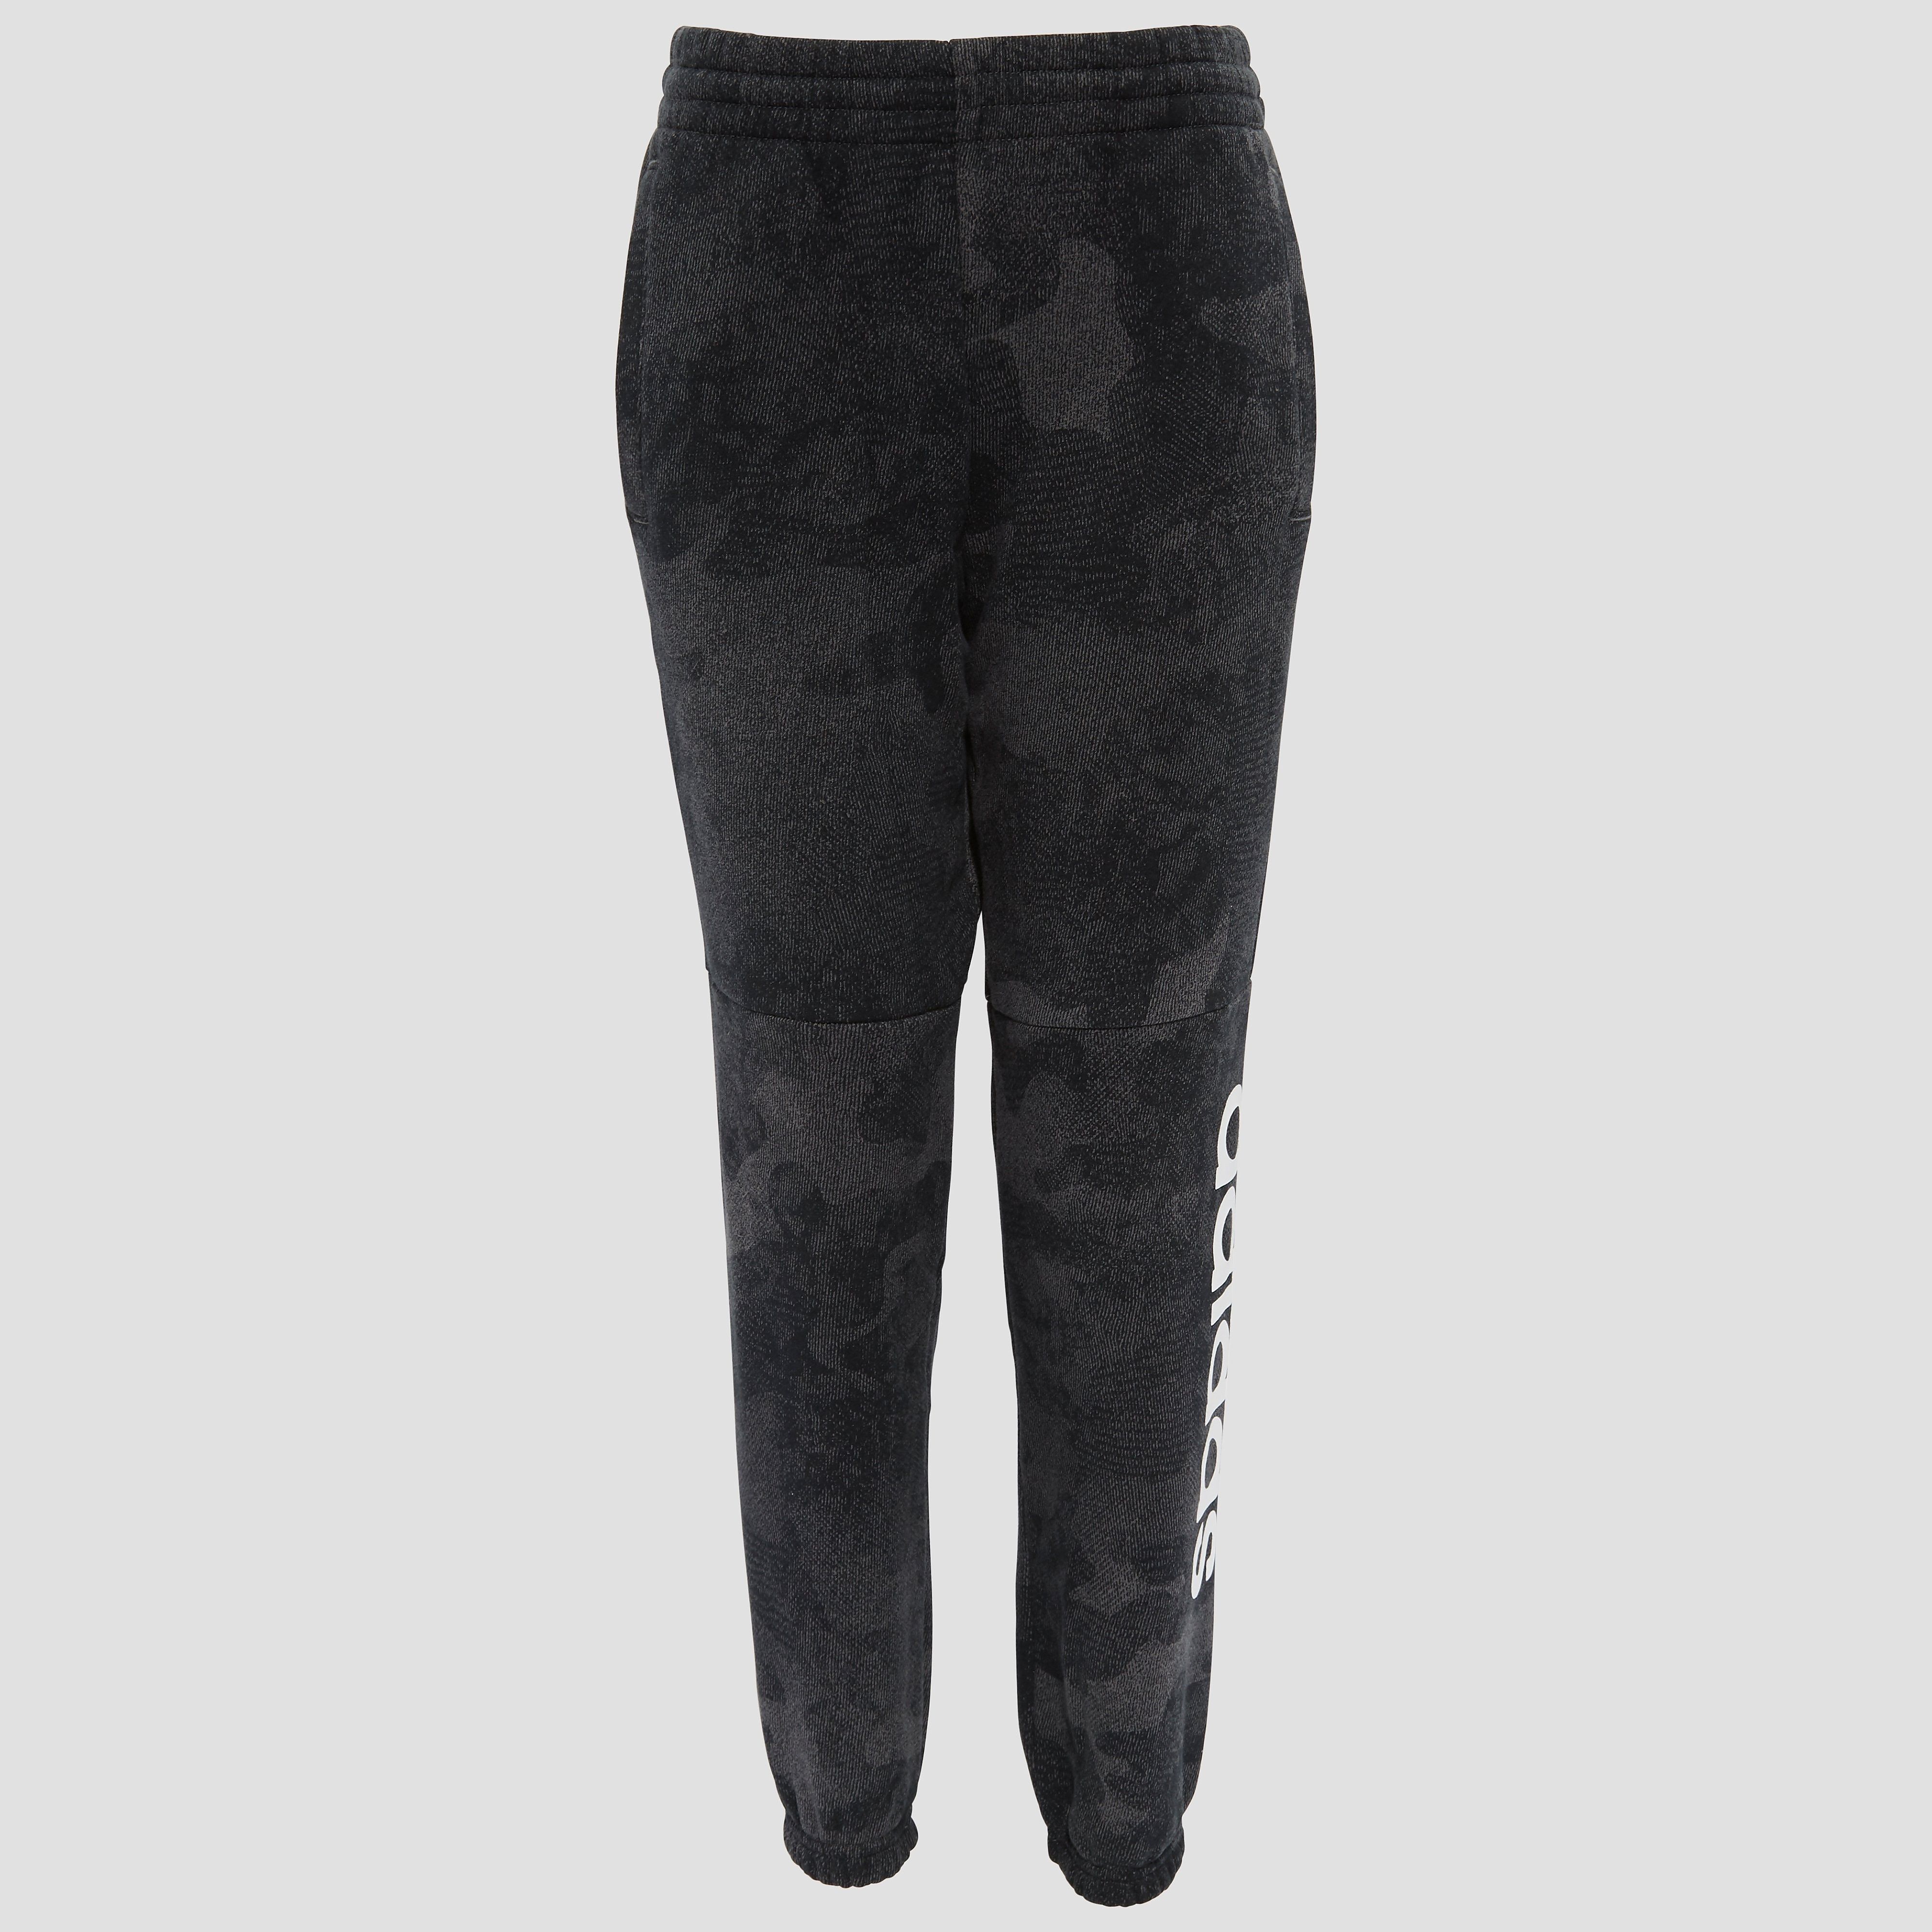 ADIDAS ESSENTIALS LINEAR JOGGINGBROEK GRIJS JONGENS